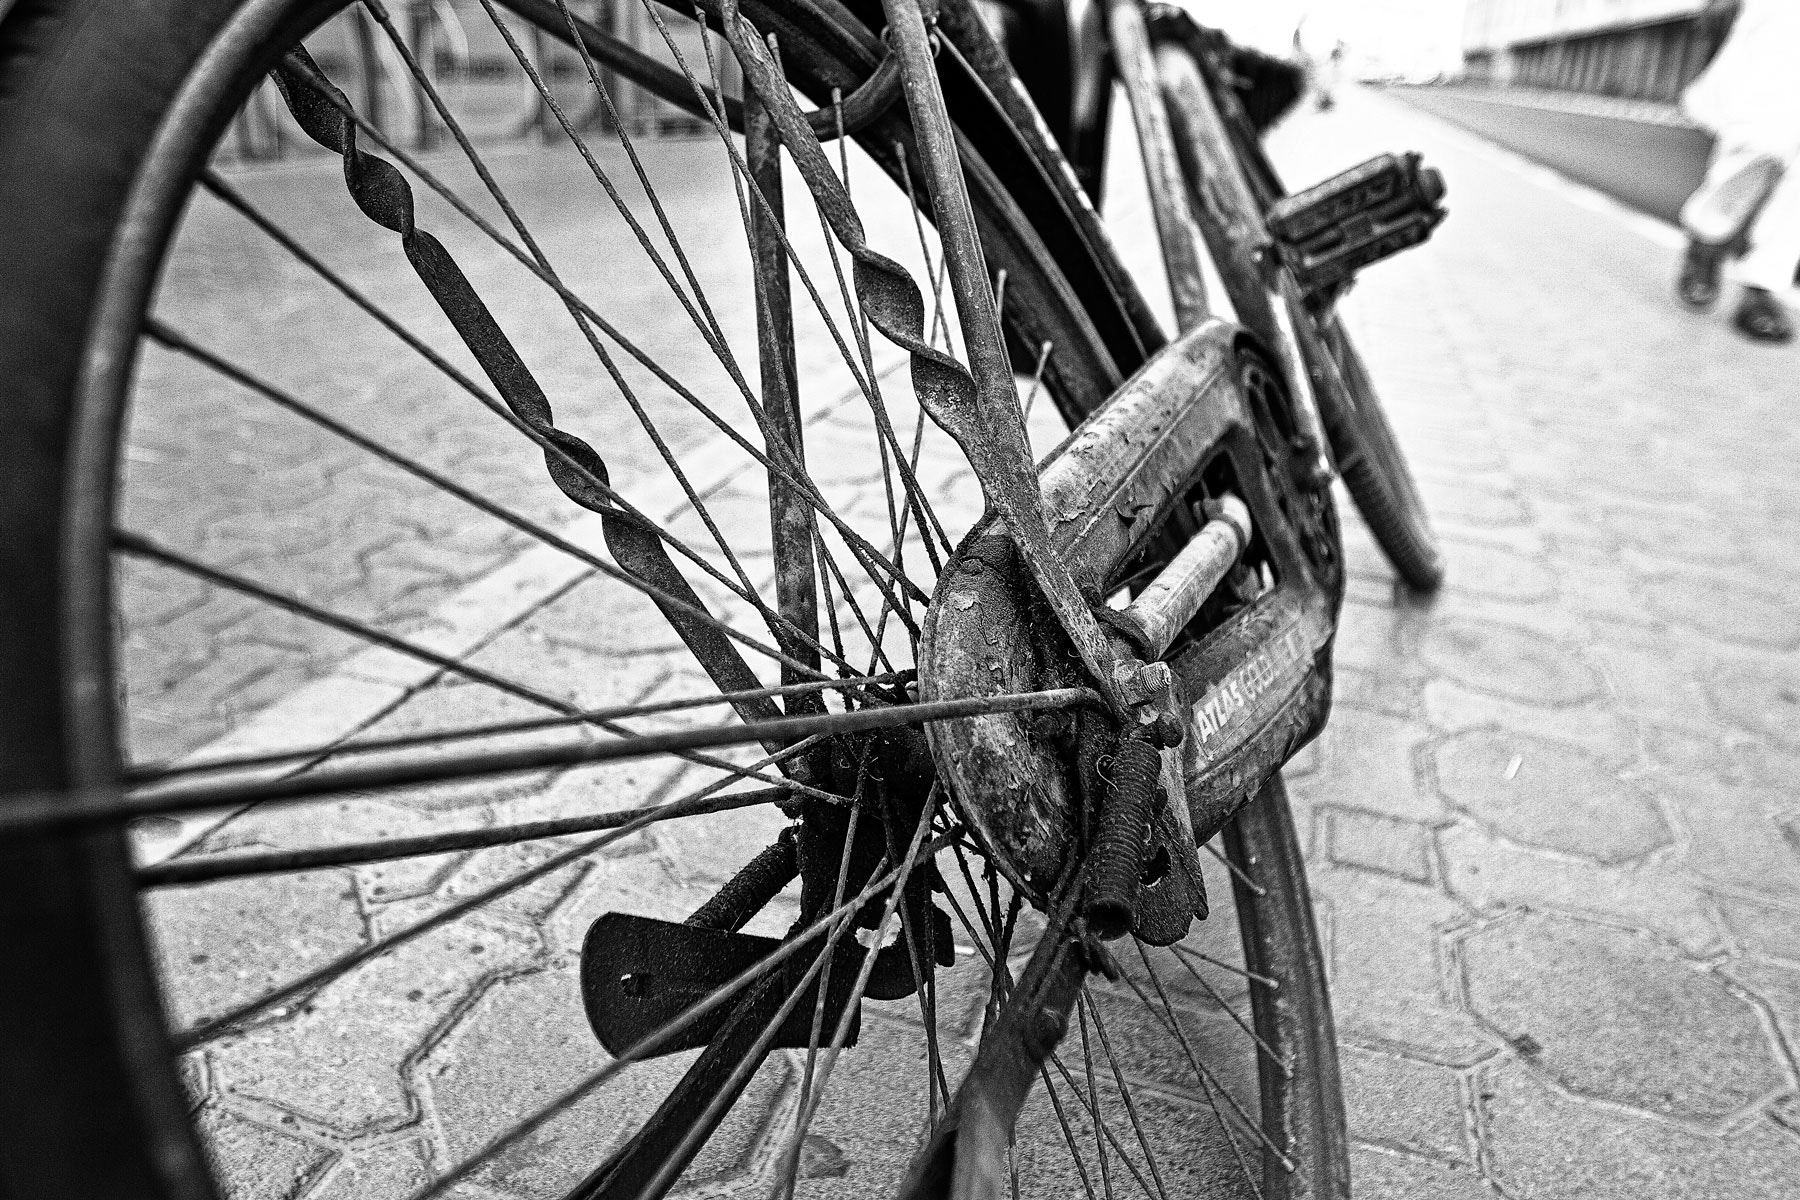 Photograph The Cycle  by Sermed Altaf on 500px